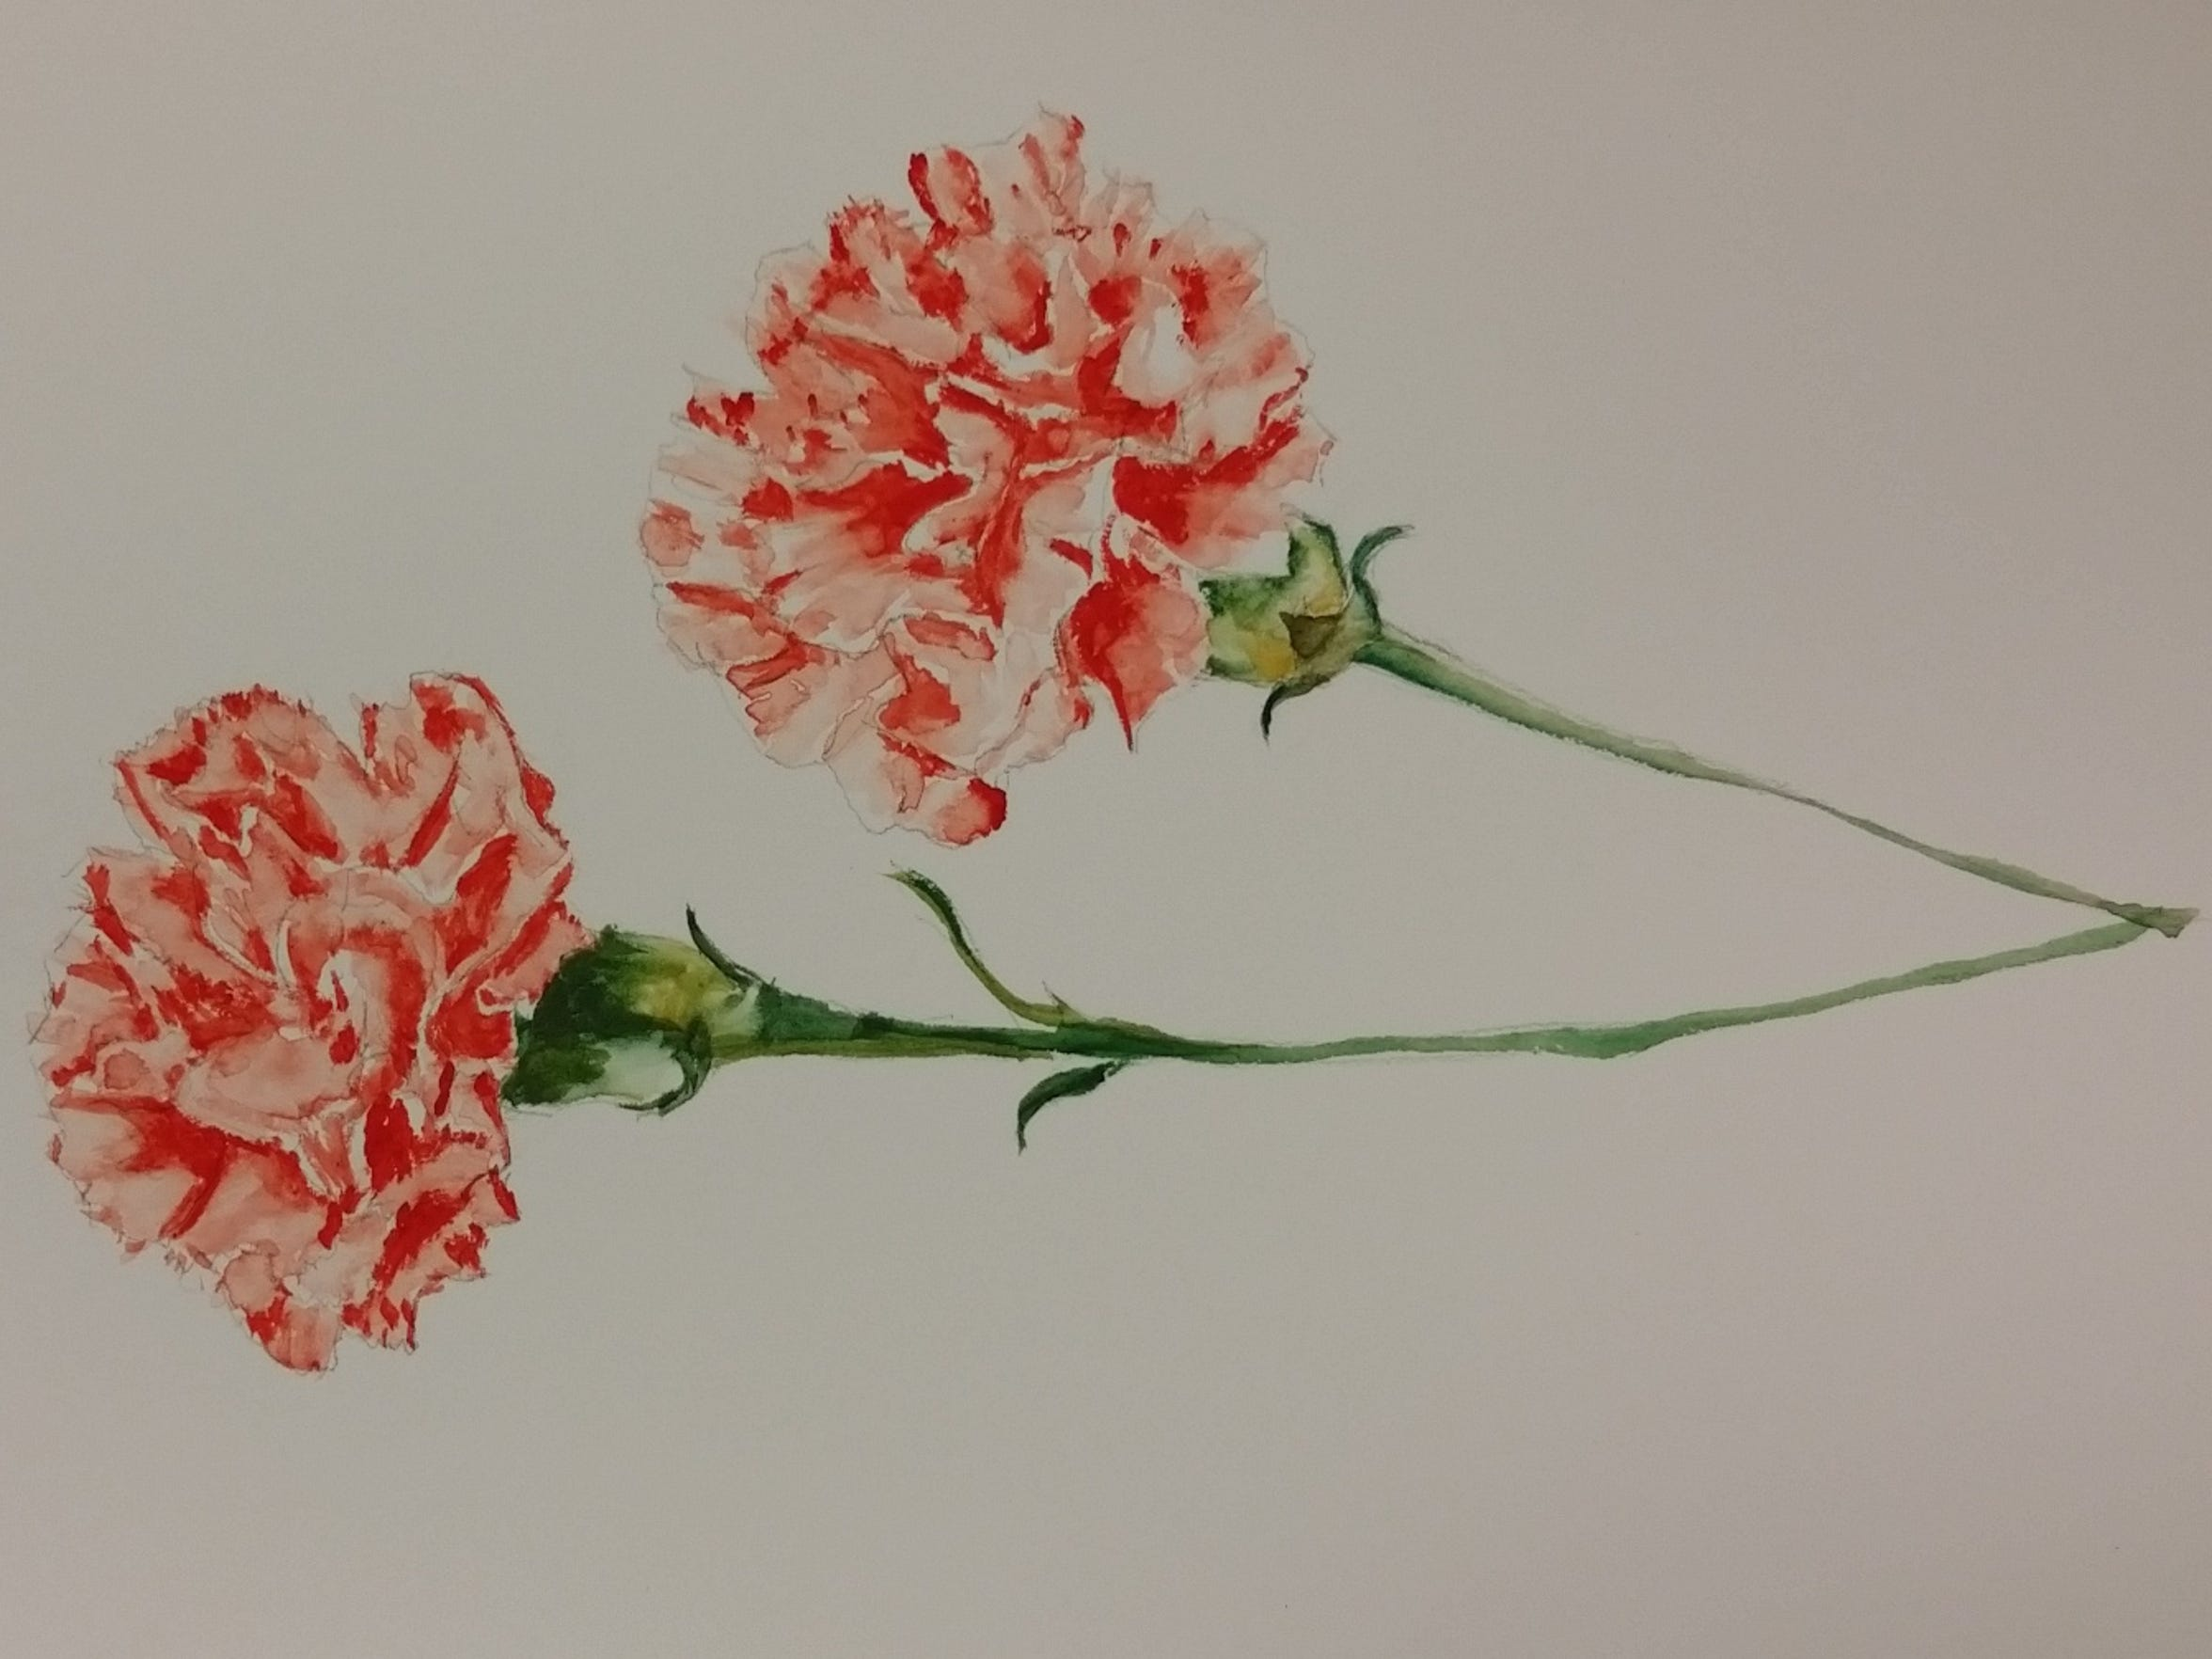 January's birthday flower is the carnation, which blooms in a variety of colors, each holding its own meaing. Pink carnations are said to be associated with Capricorns born in this month, symbolizing distinction, fasicnation and pure love.